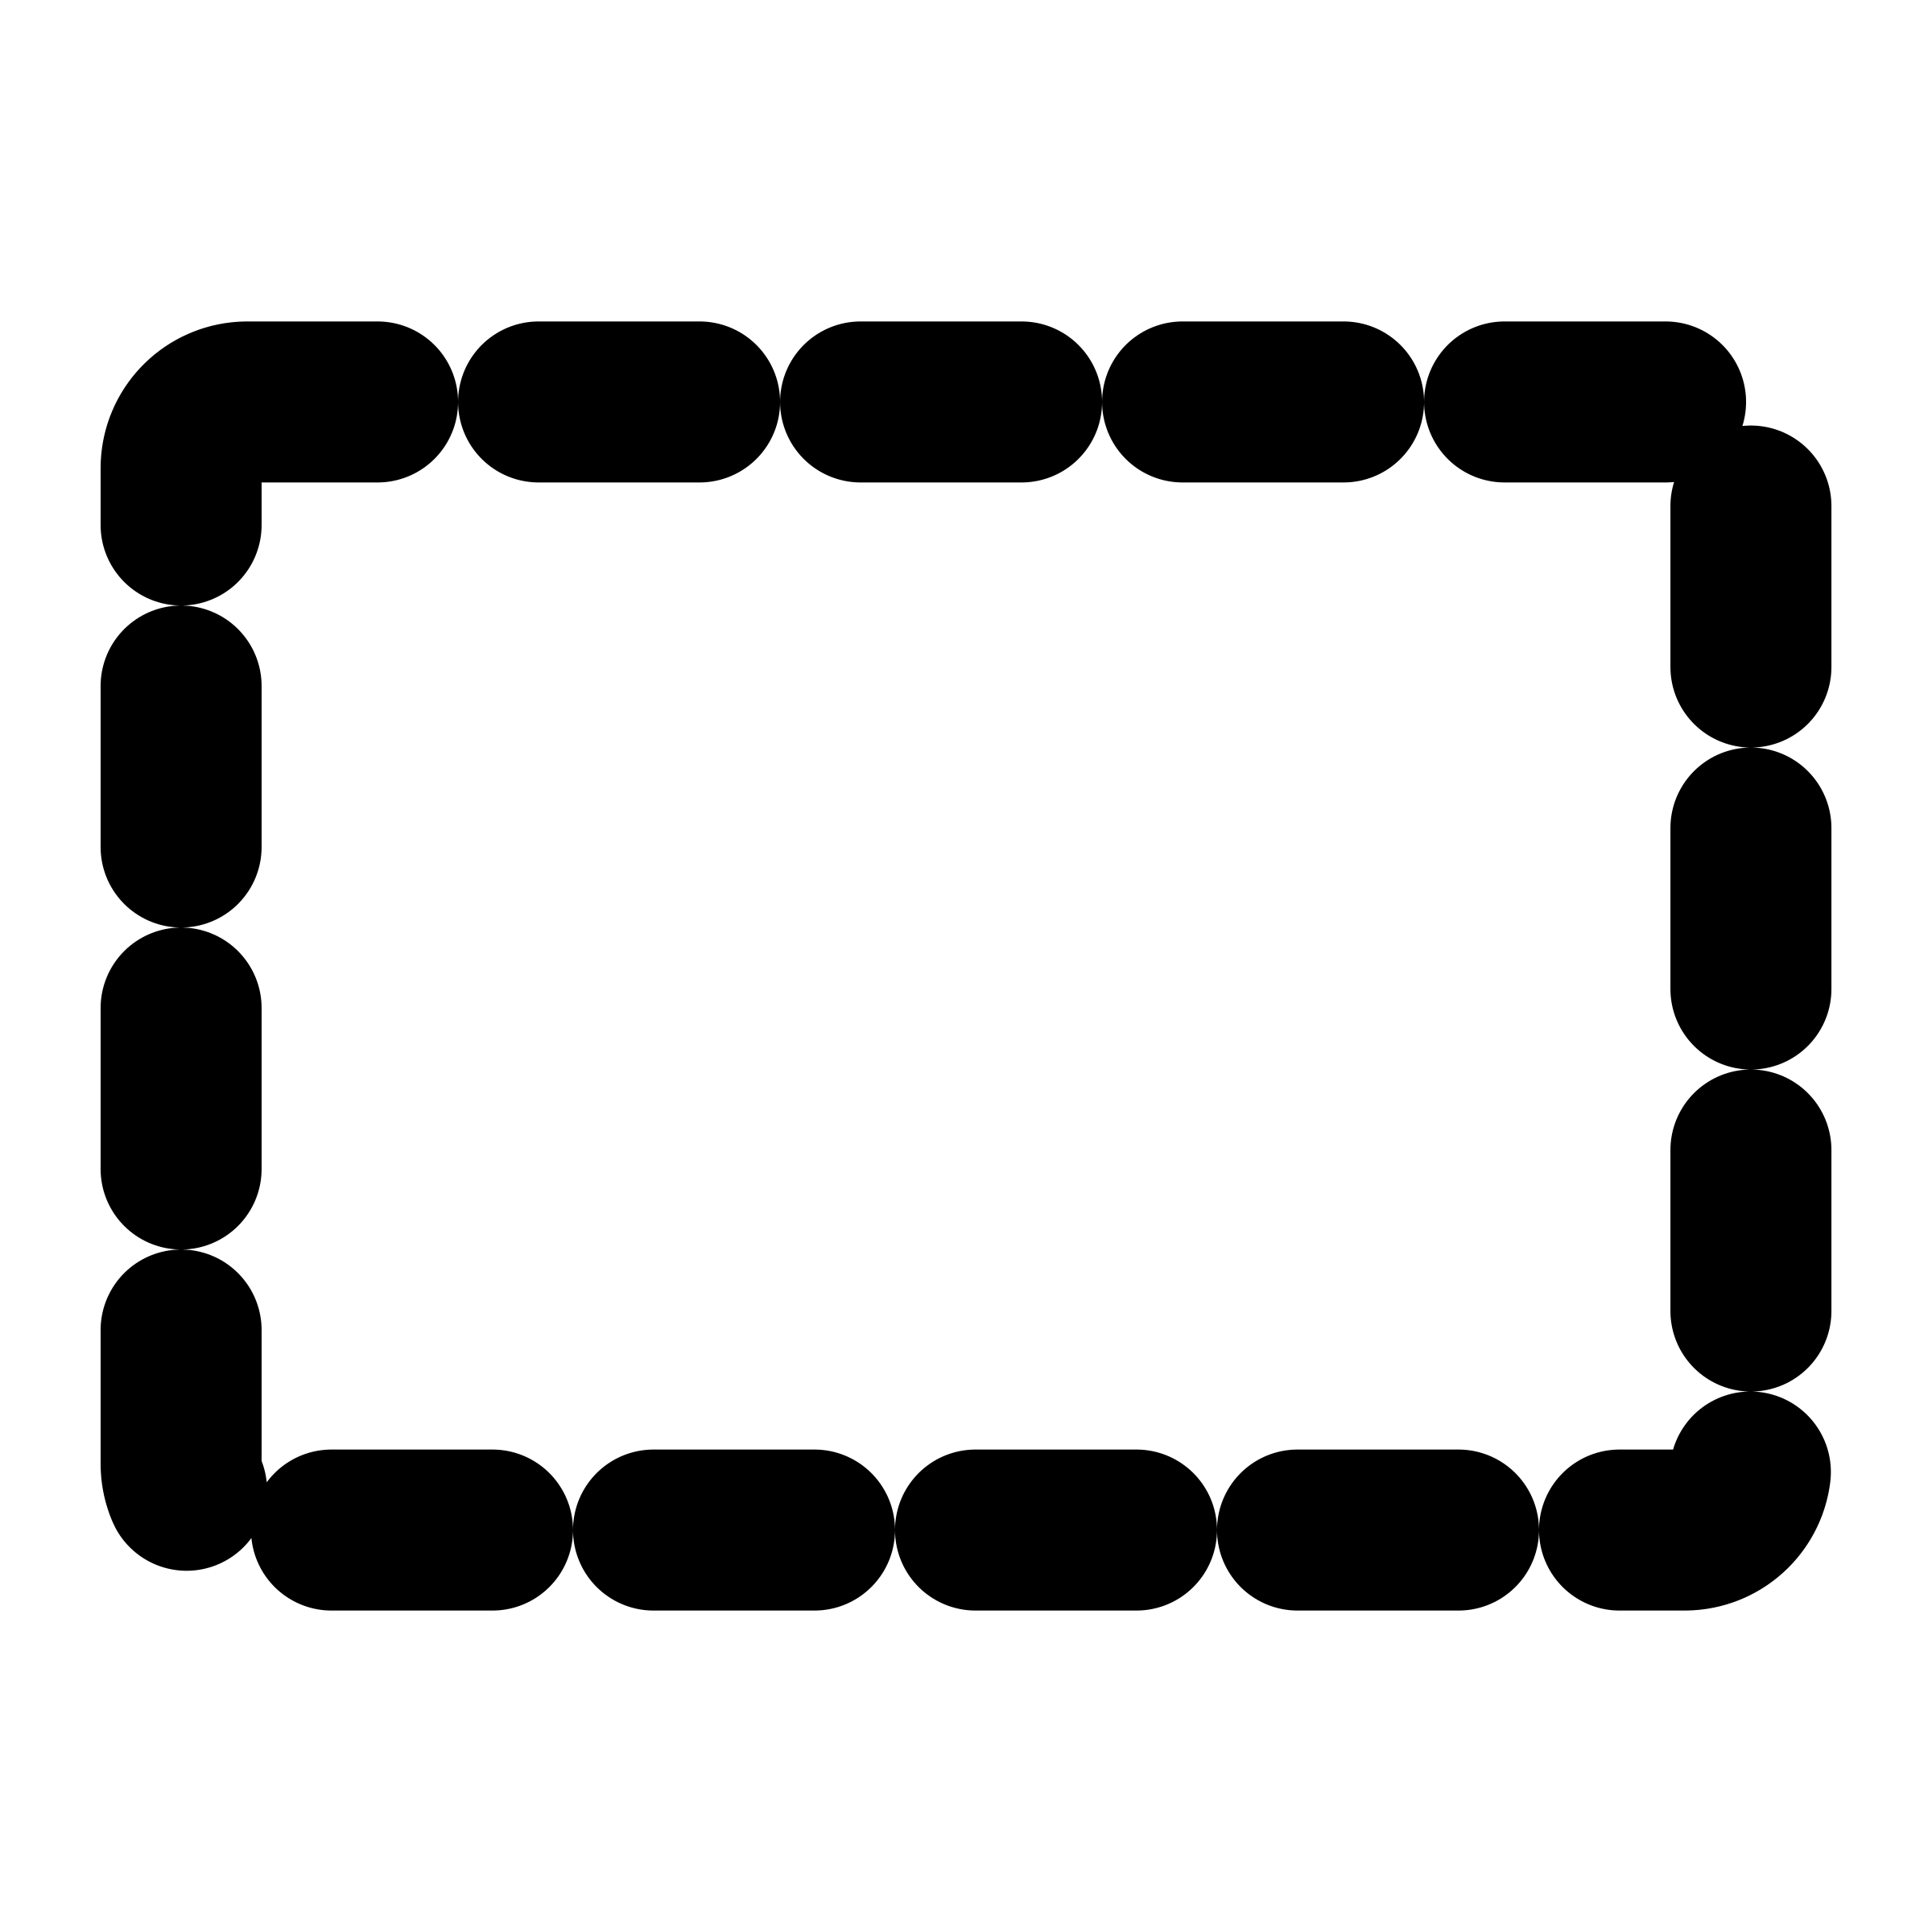 Mono tool selection icons. Clip rect png transparent download